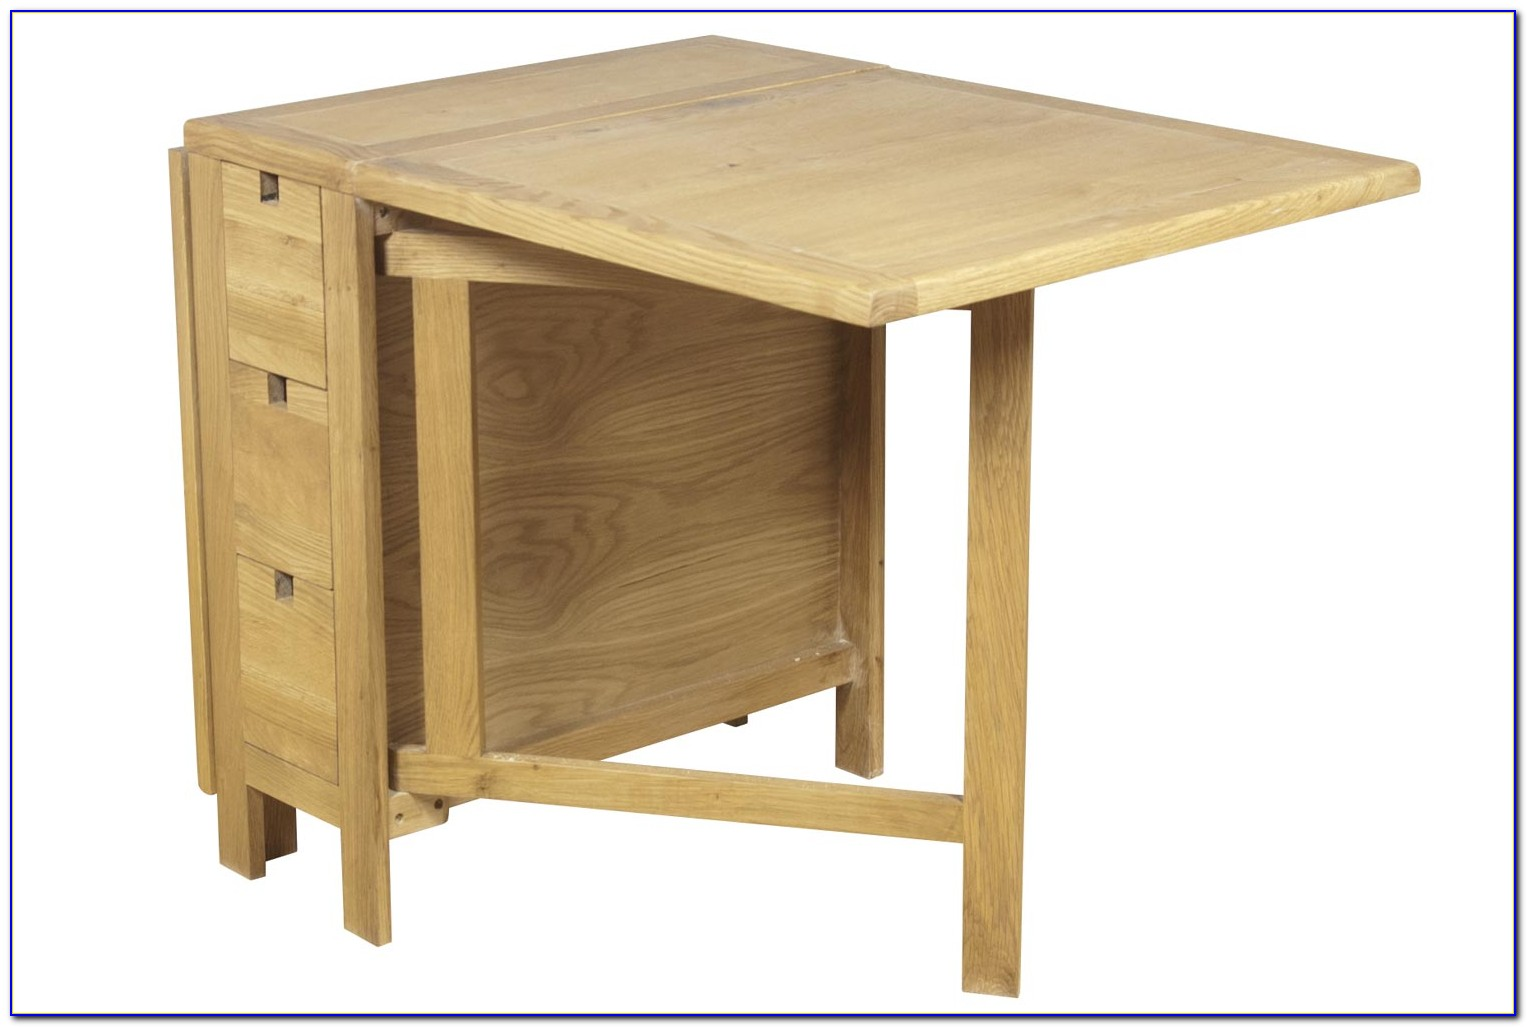 Drop Leaf Table With Onboard Chair Storage